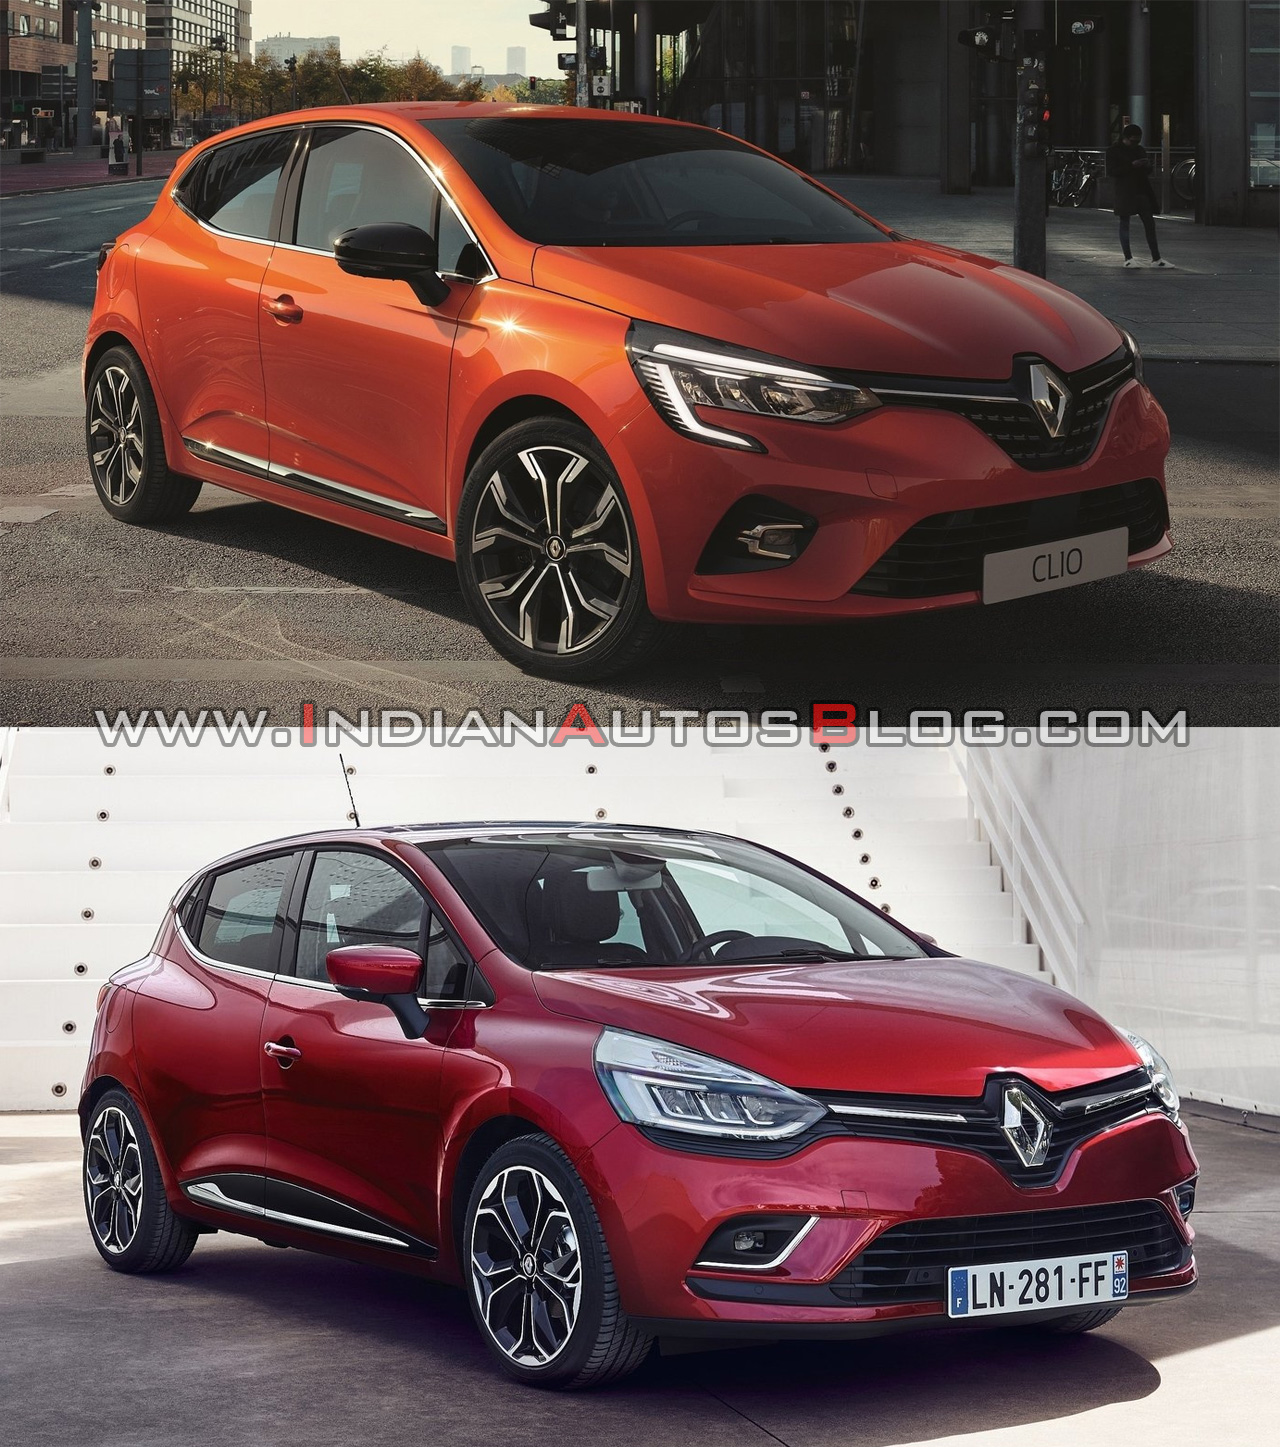 2019 renault clio vs 2016 renault clio old vs new. Black Bedroom Furniture Sets. Home Design Ideas